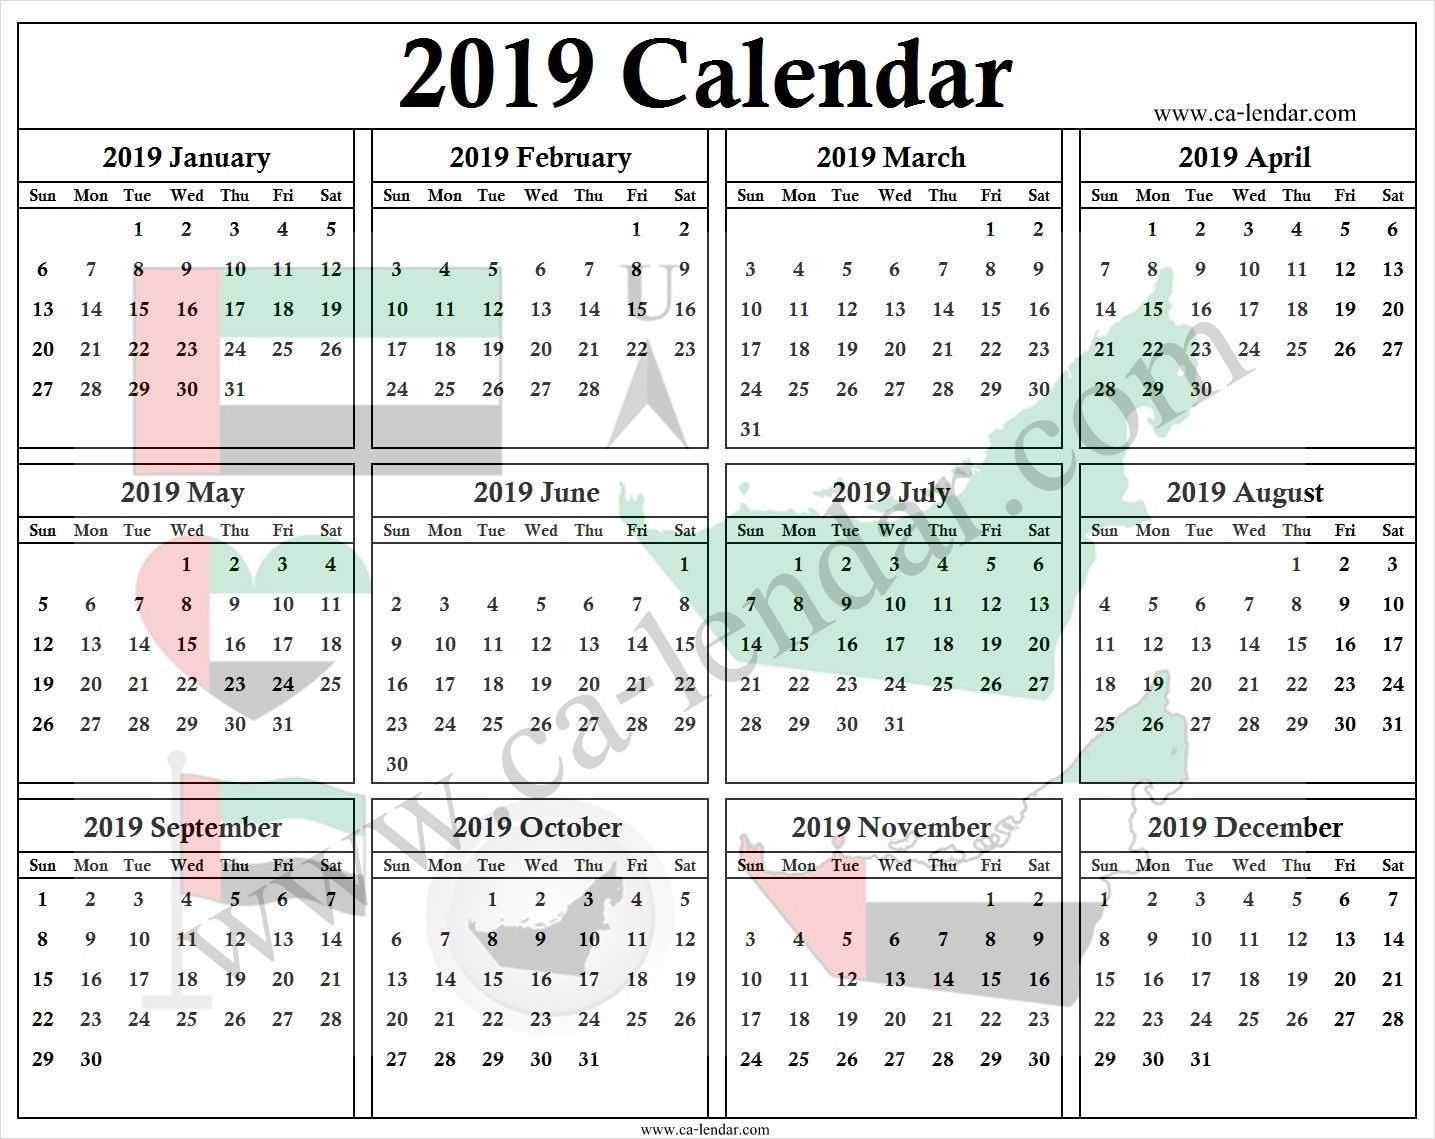 Uae Calendar 2019 With Holidays 2019 Calendar Template Pinterest